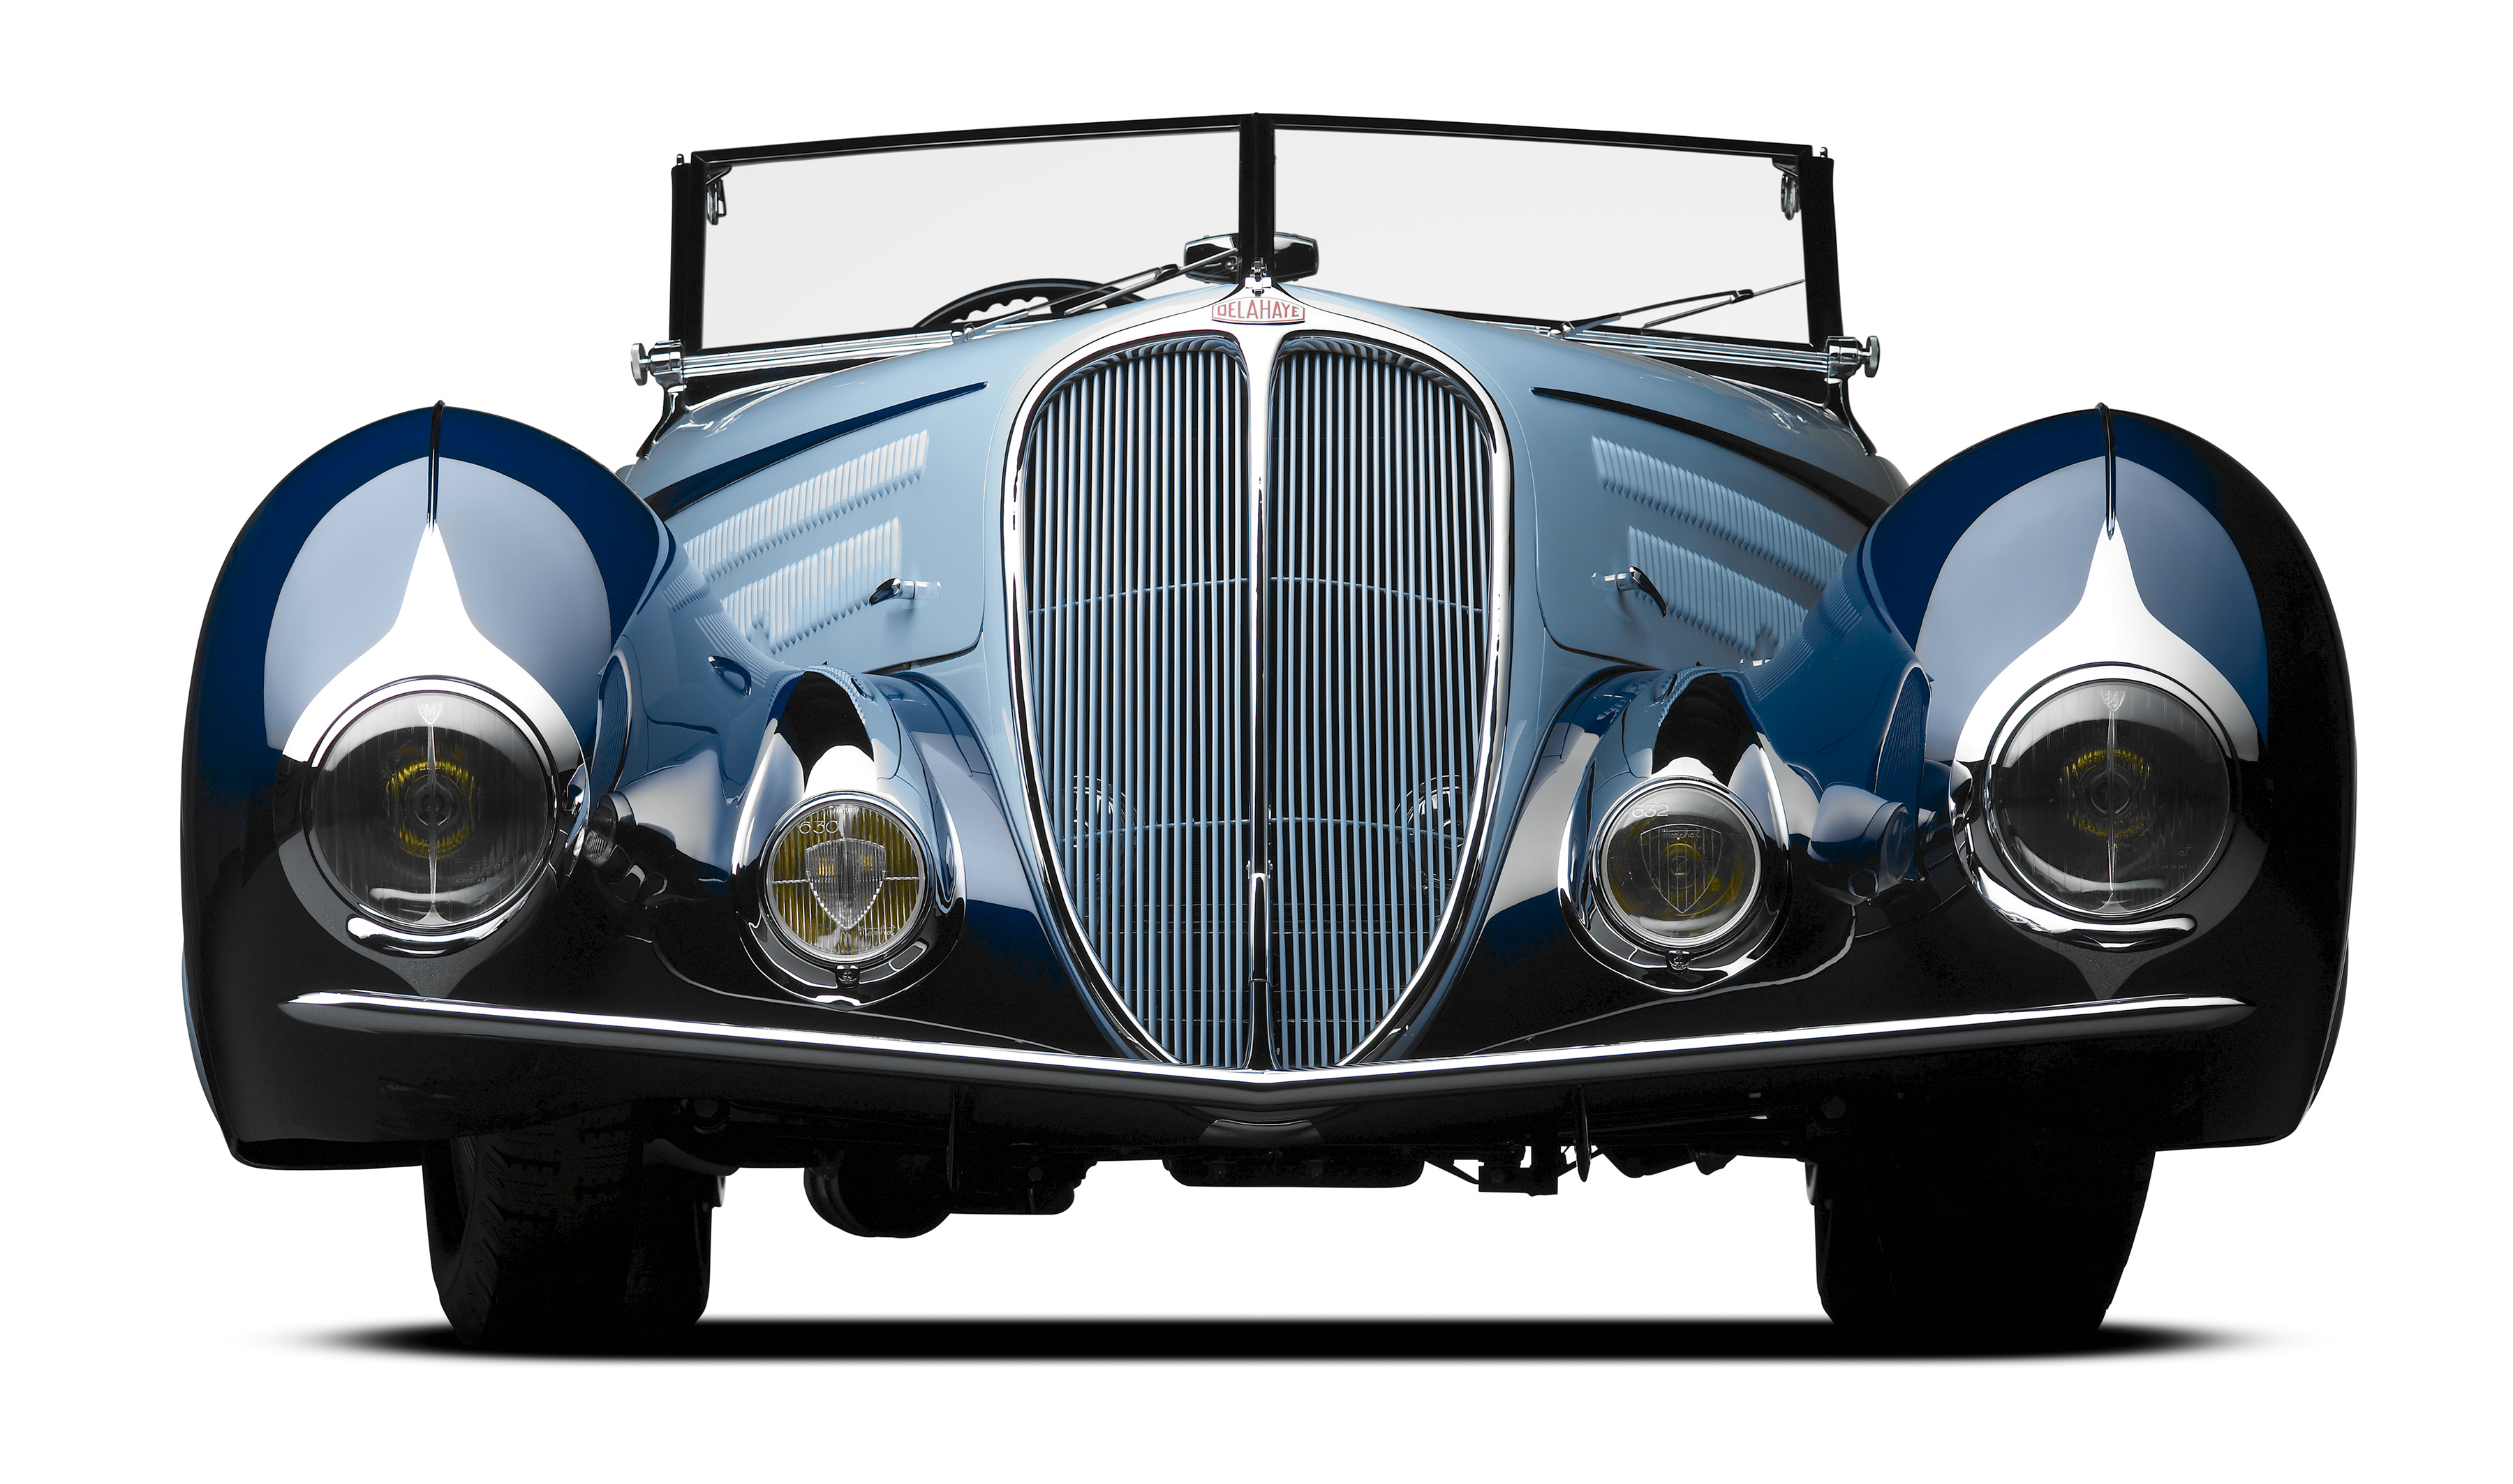 Mullins' 'Star of India' Delahaye acclaimed best of the beauties at